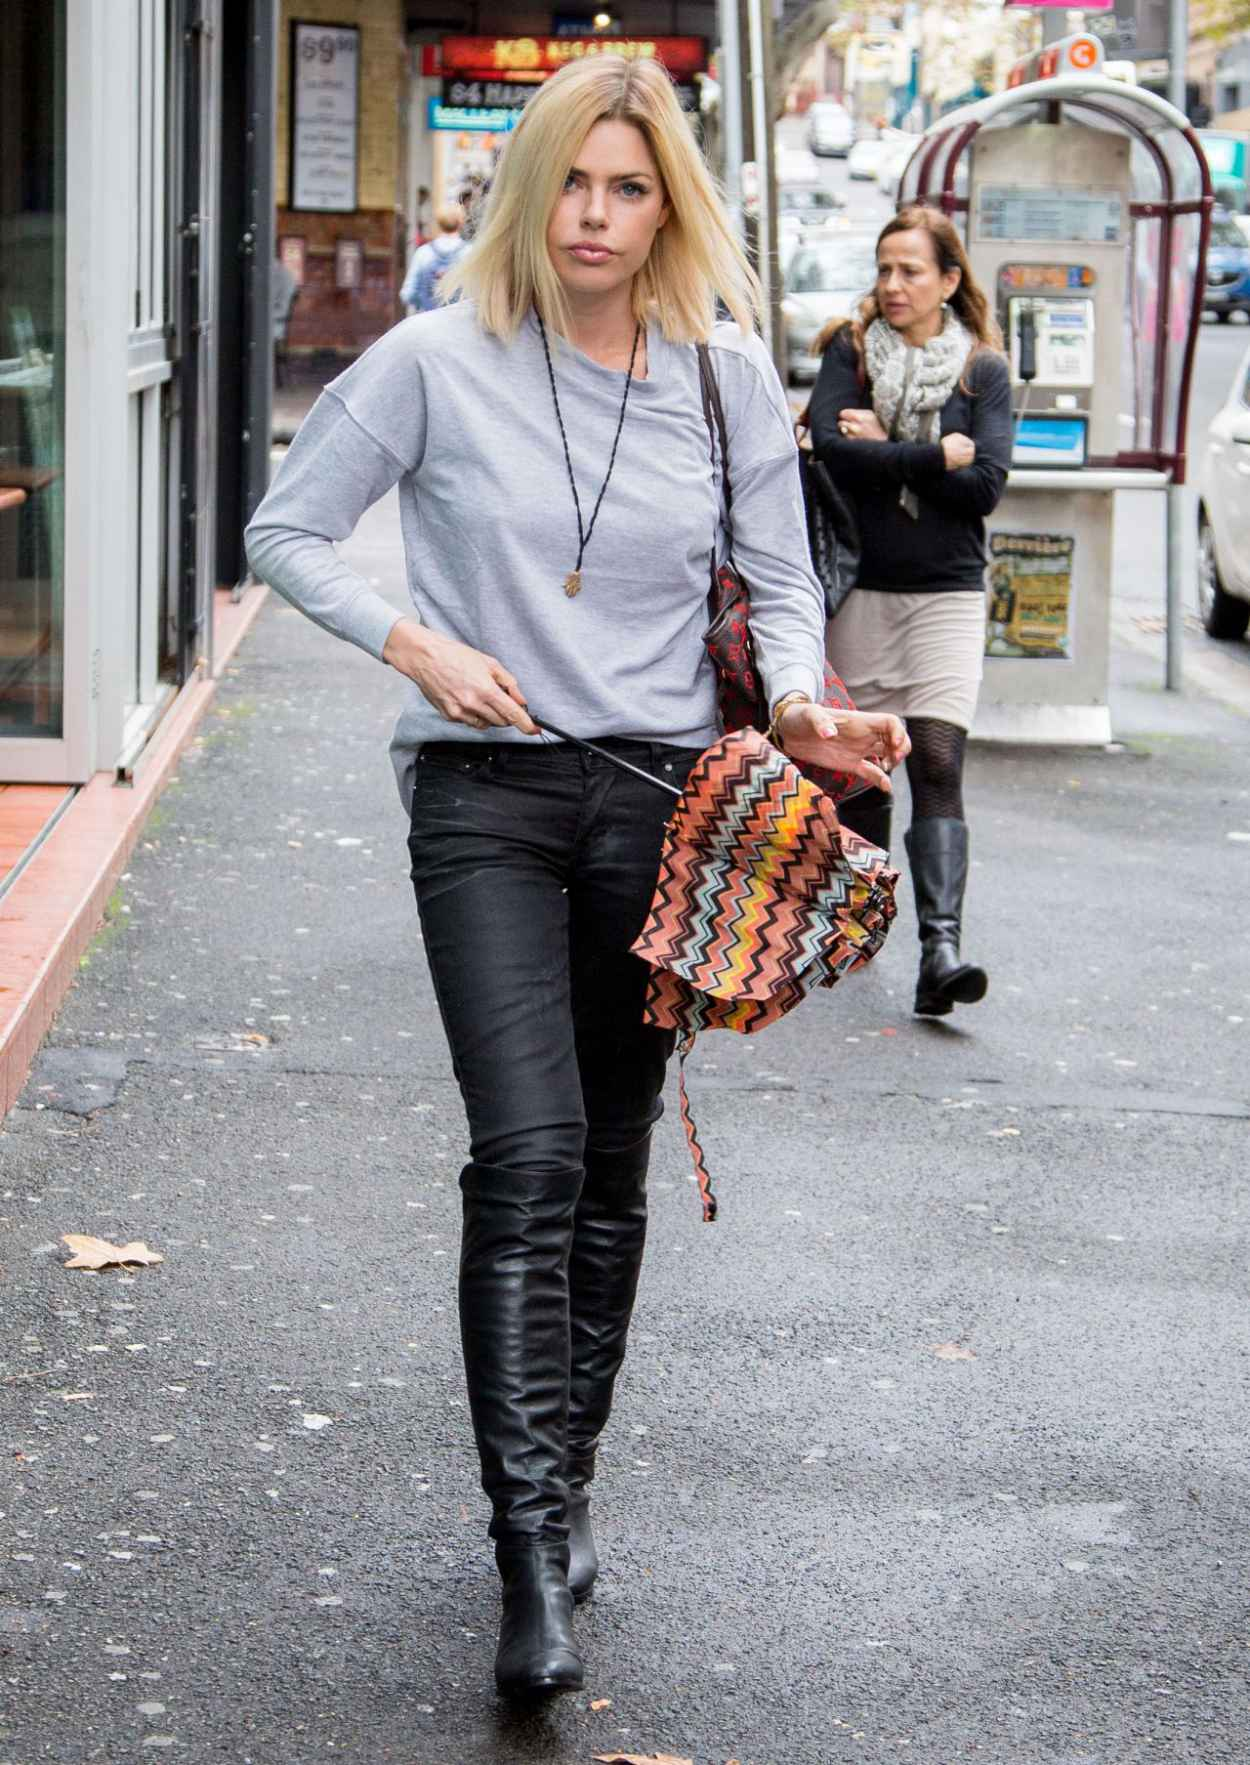 Sophie Monk Street Style - Rainy Day in Sydney, Australia, April 2015-4